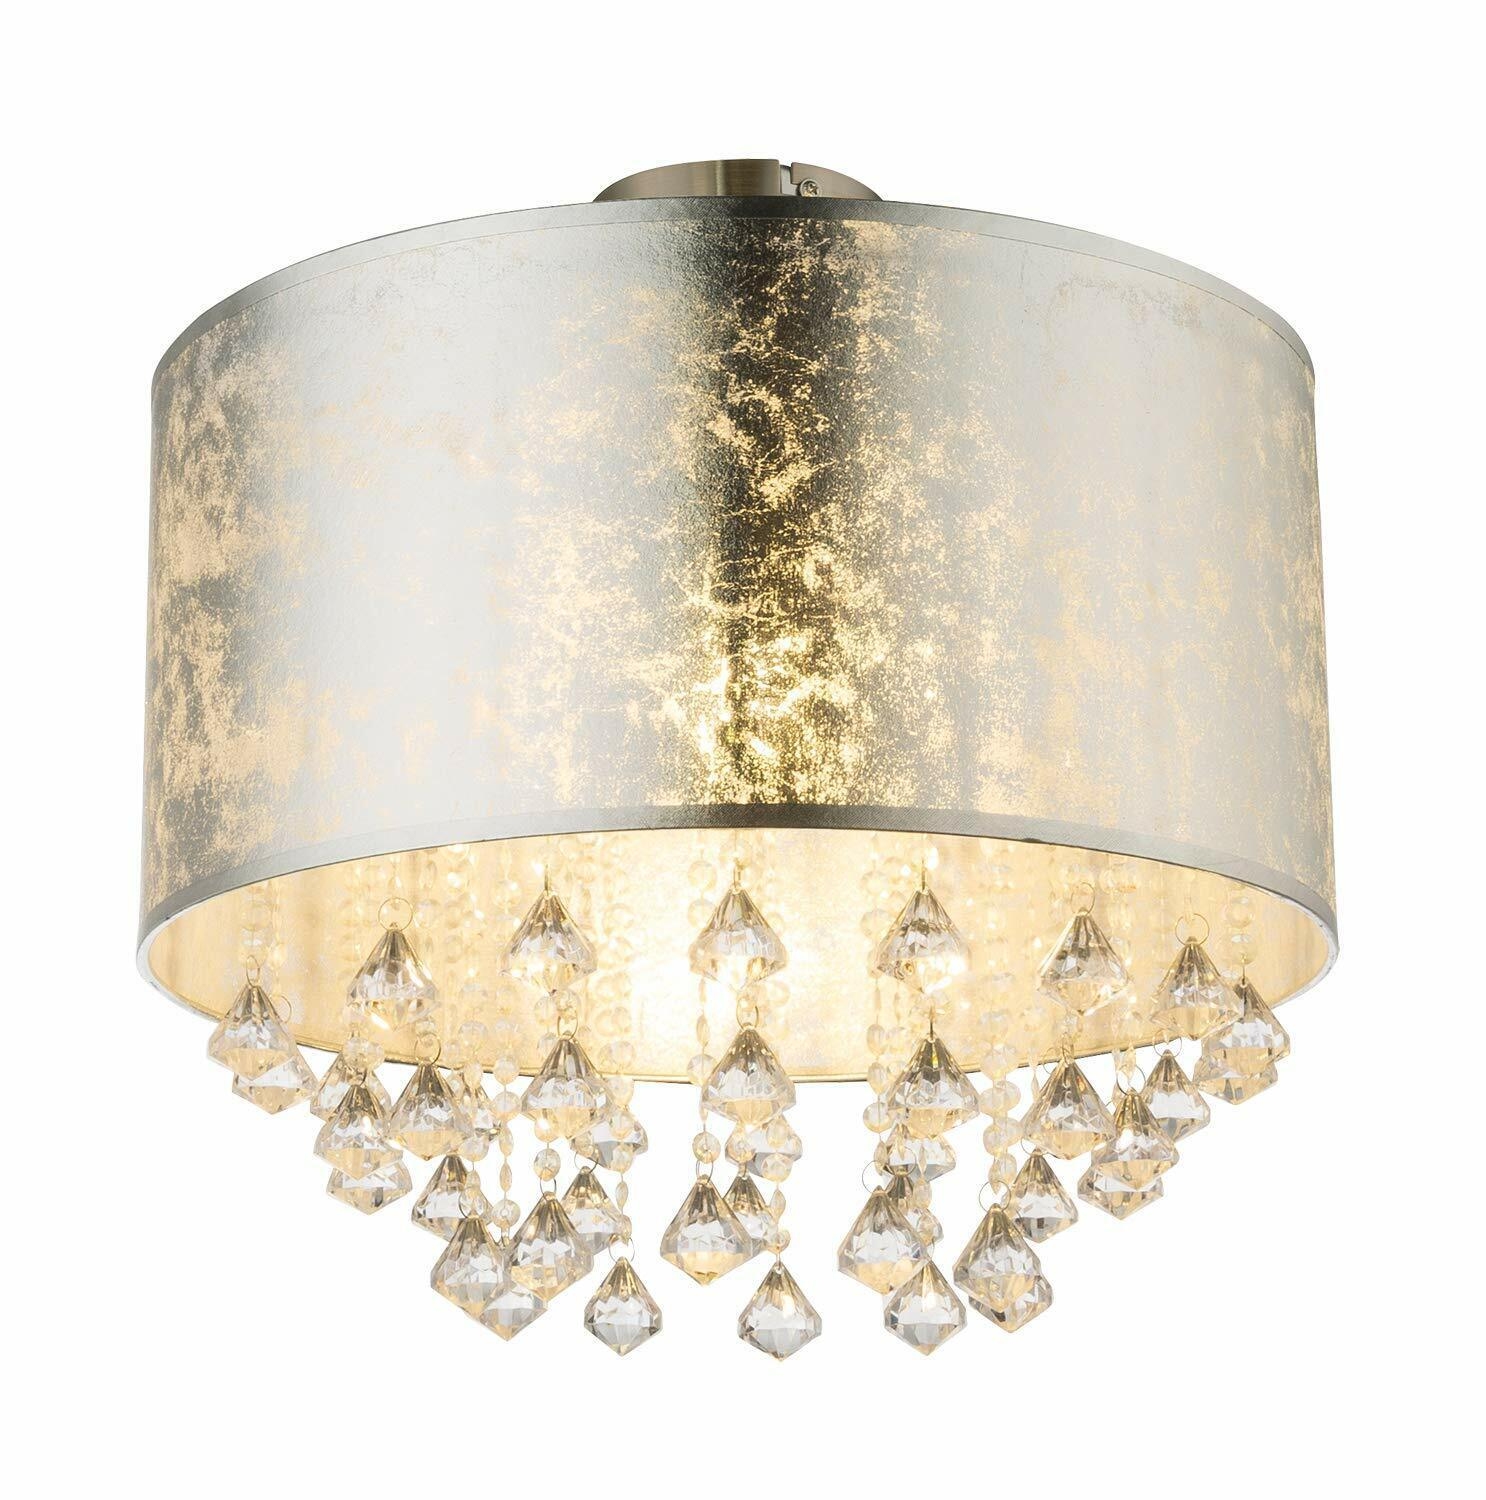 Globo Amy1 Ceiling Light Flush Mount Silber 38cm H x 40cm W x 40cm D